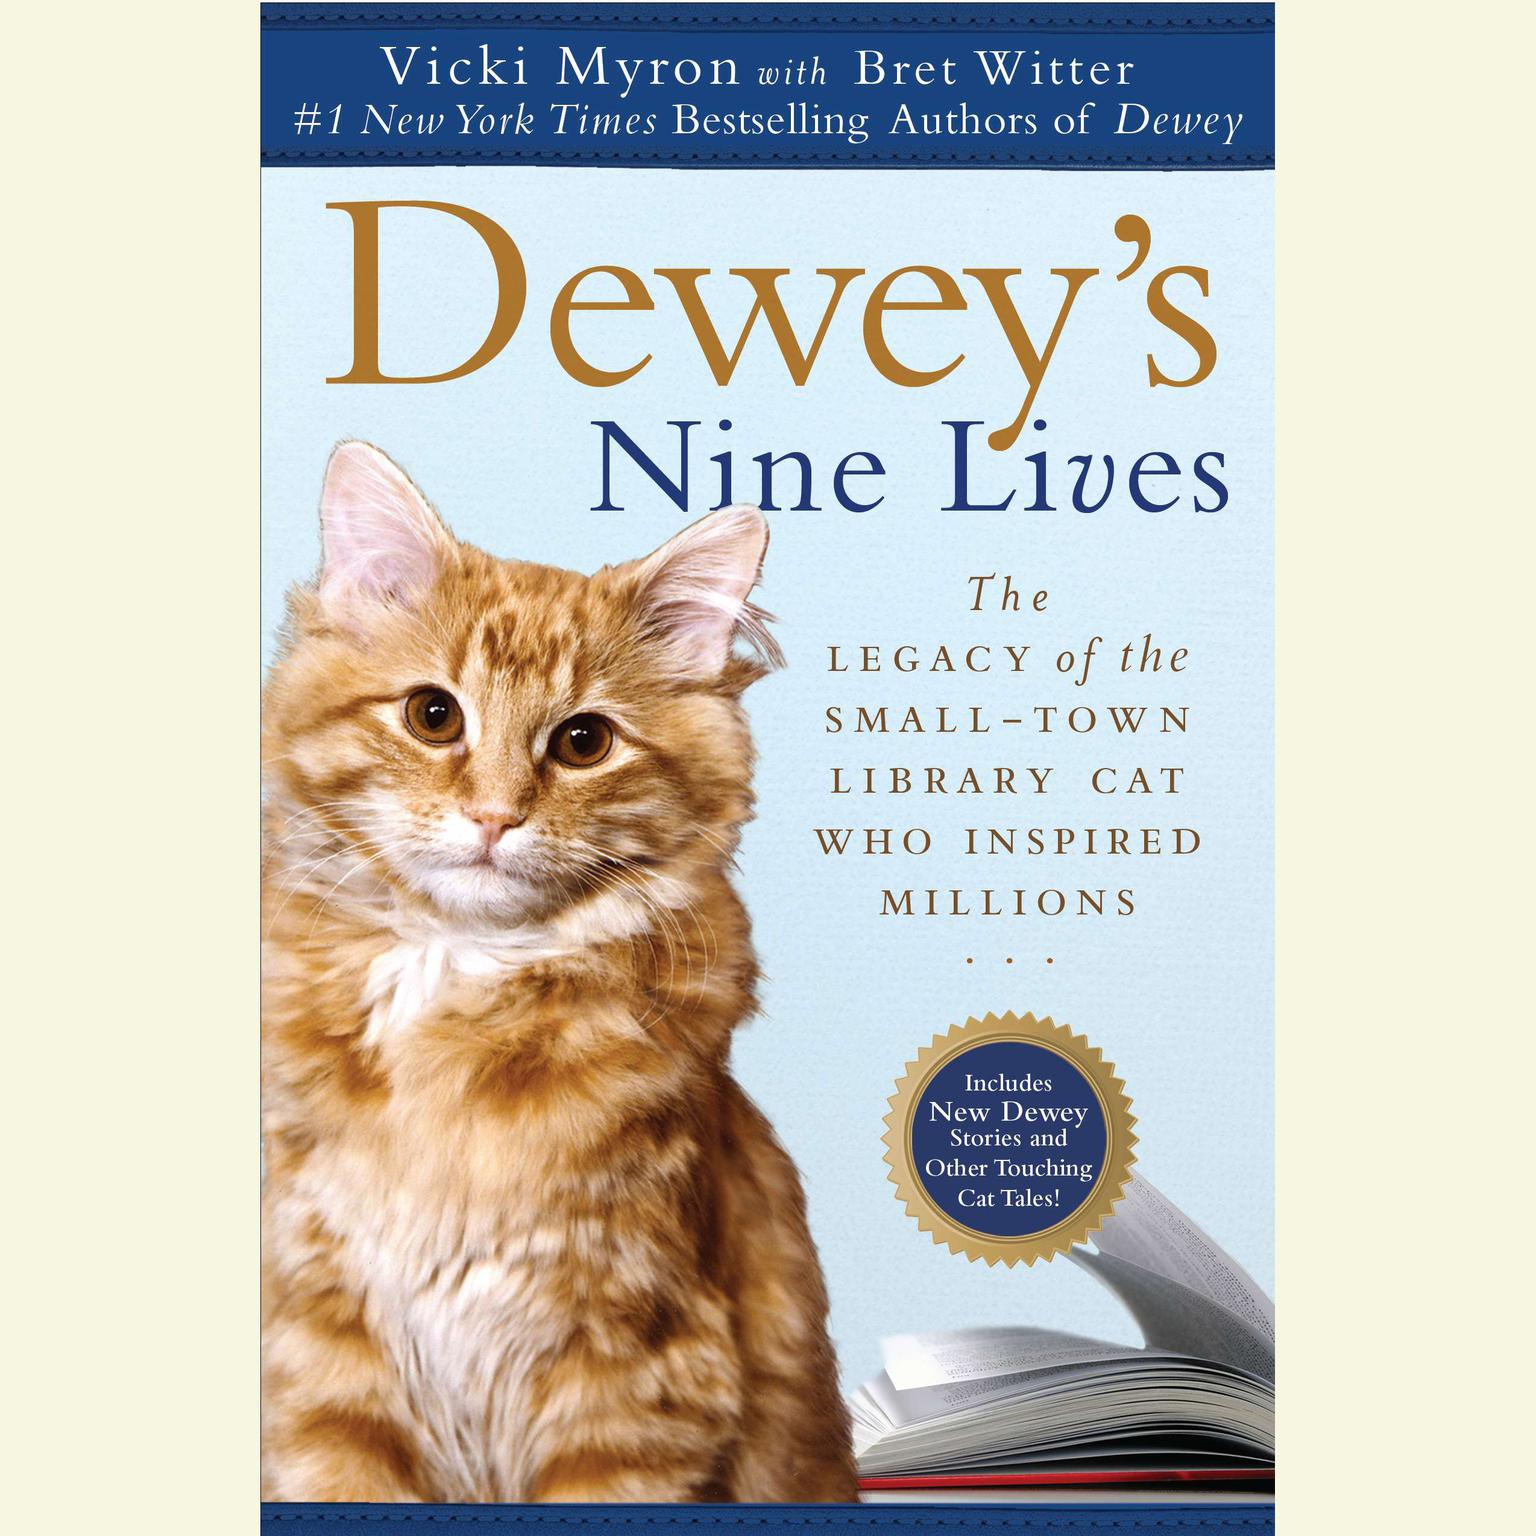 Printable Dewey's Nine Lives: The Magic of a Small-town Library Cat Who Touched Millions Audiobook Cover Art